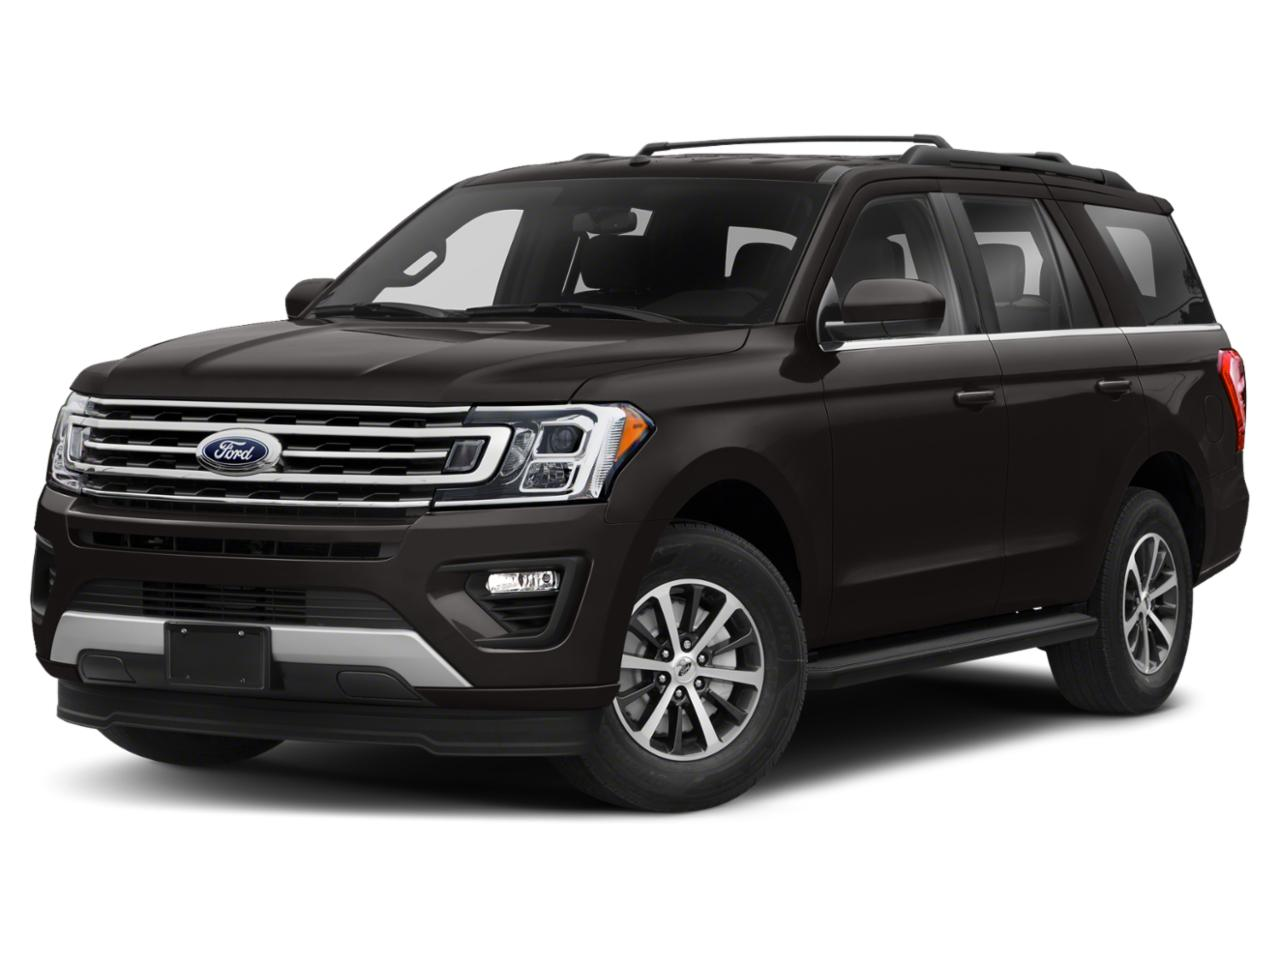 2021 Ford Expedition Vehicle Photo in Neenah, WI 54956-3151